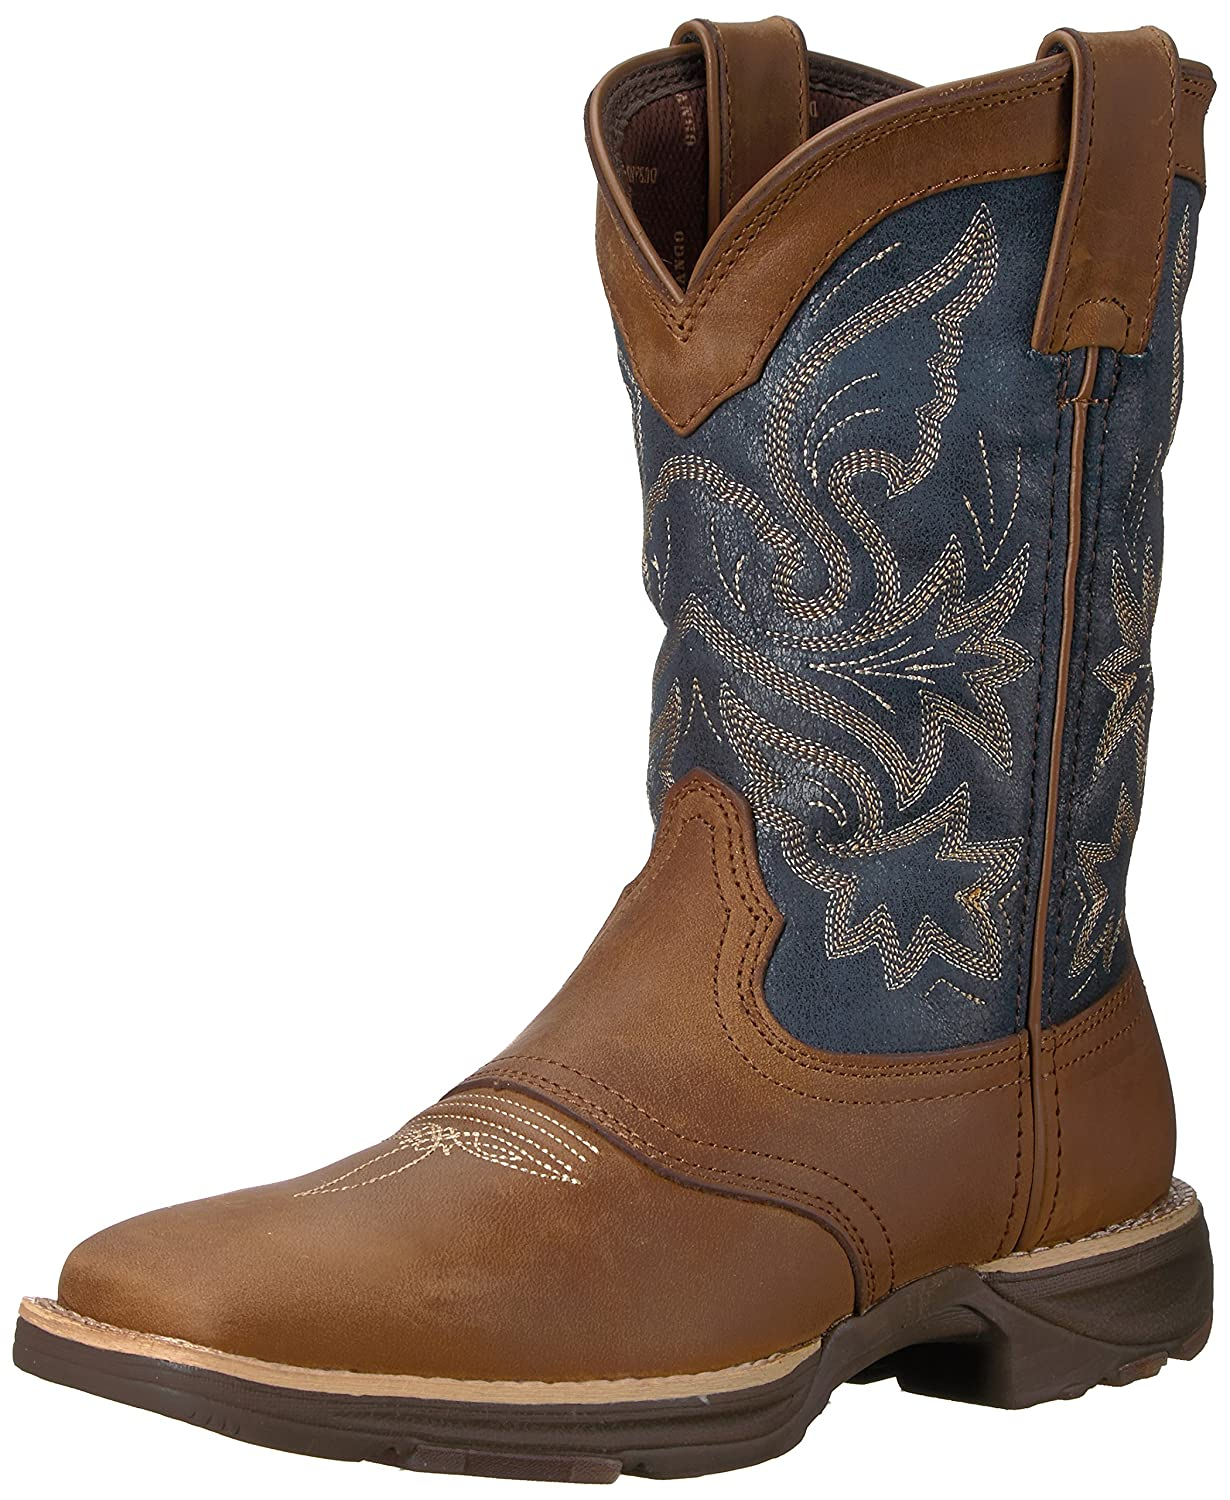 Durango Women's DRD0183 Western Boot B01HF7BYOG 8.5 B(M) US|Tan Blue Denim